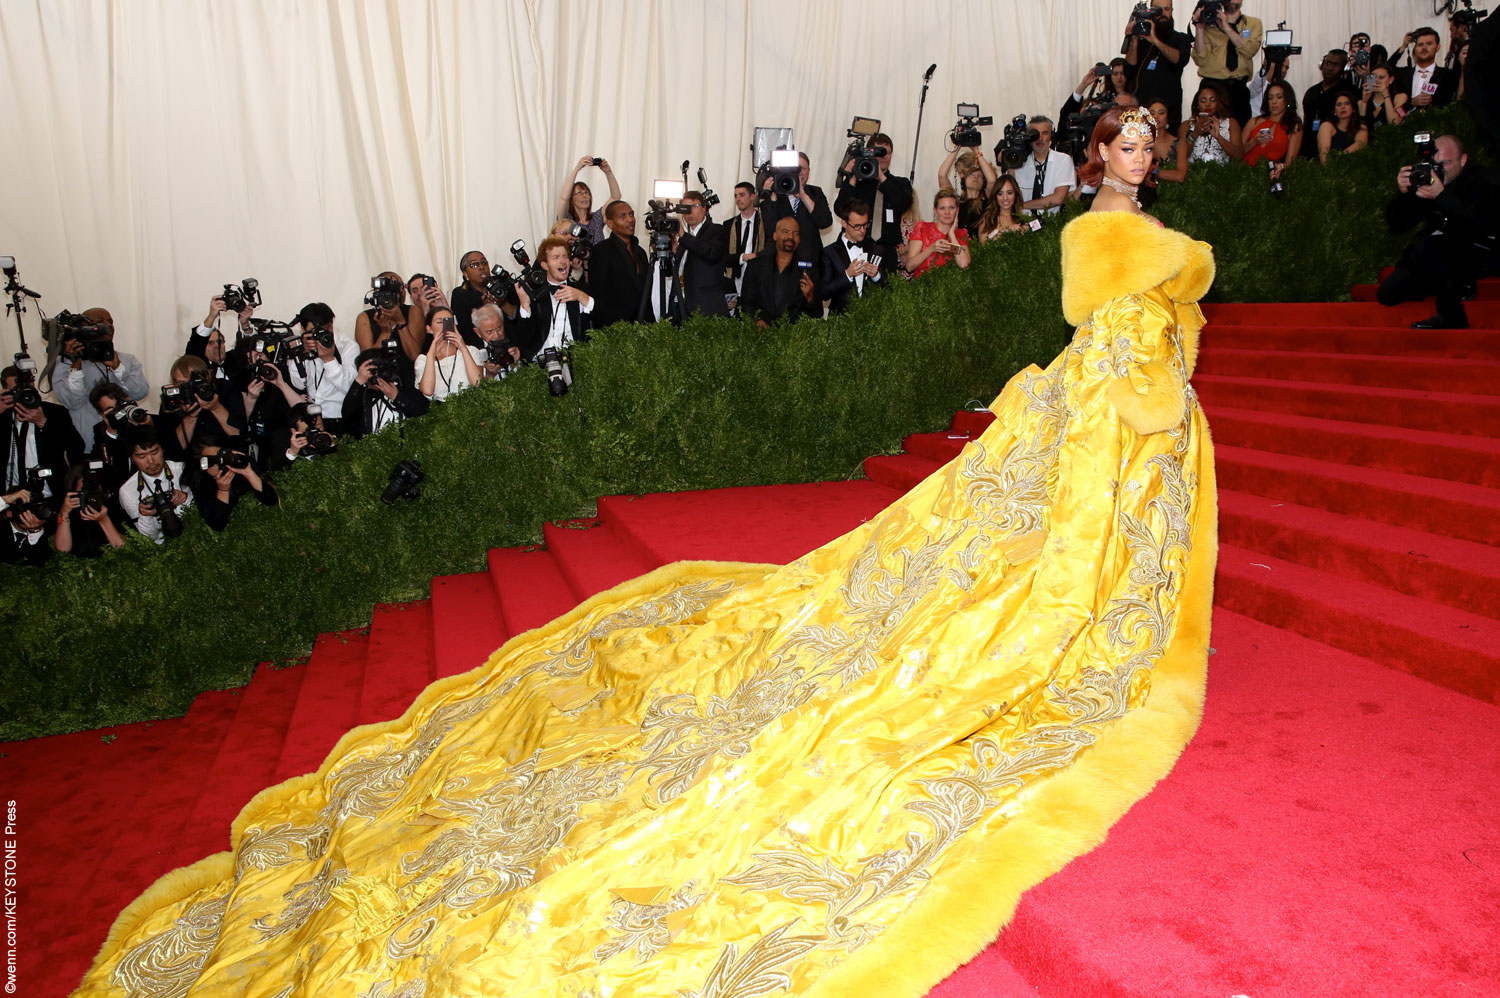 Rihanna made a very large, yellow statement on the carpet, wearing one of her most eccentric looks yet. She showed upsportinga massive golden GuoPei gown thatneededthree people to help her carryitup the steps. Trimmed with fur that wrapped around her shoulders like a shawl, the embellished gown had everyone talking.